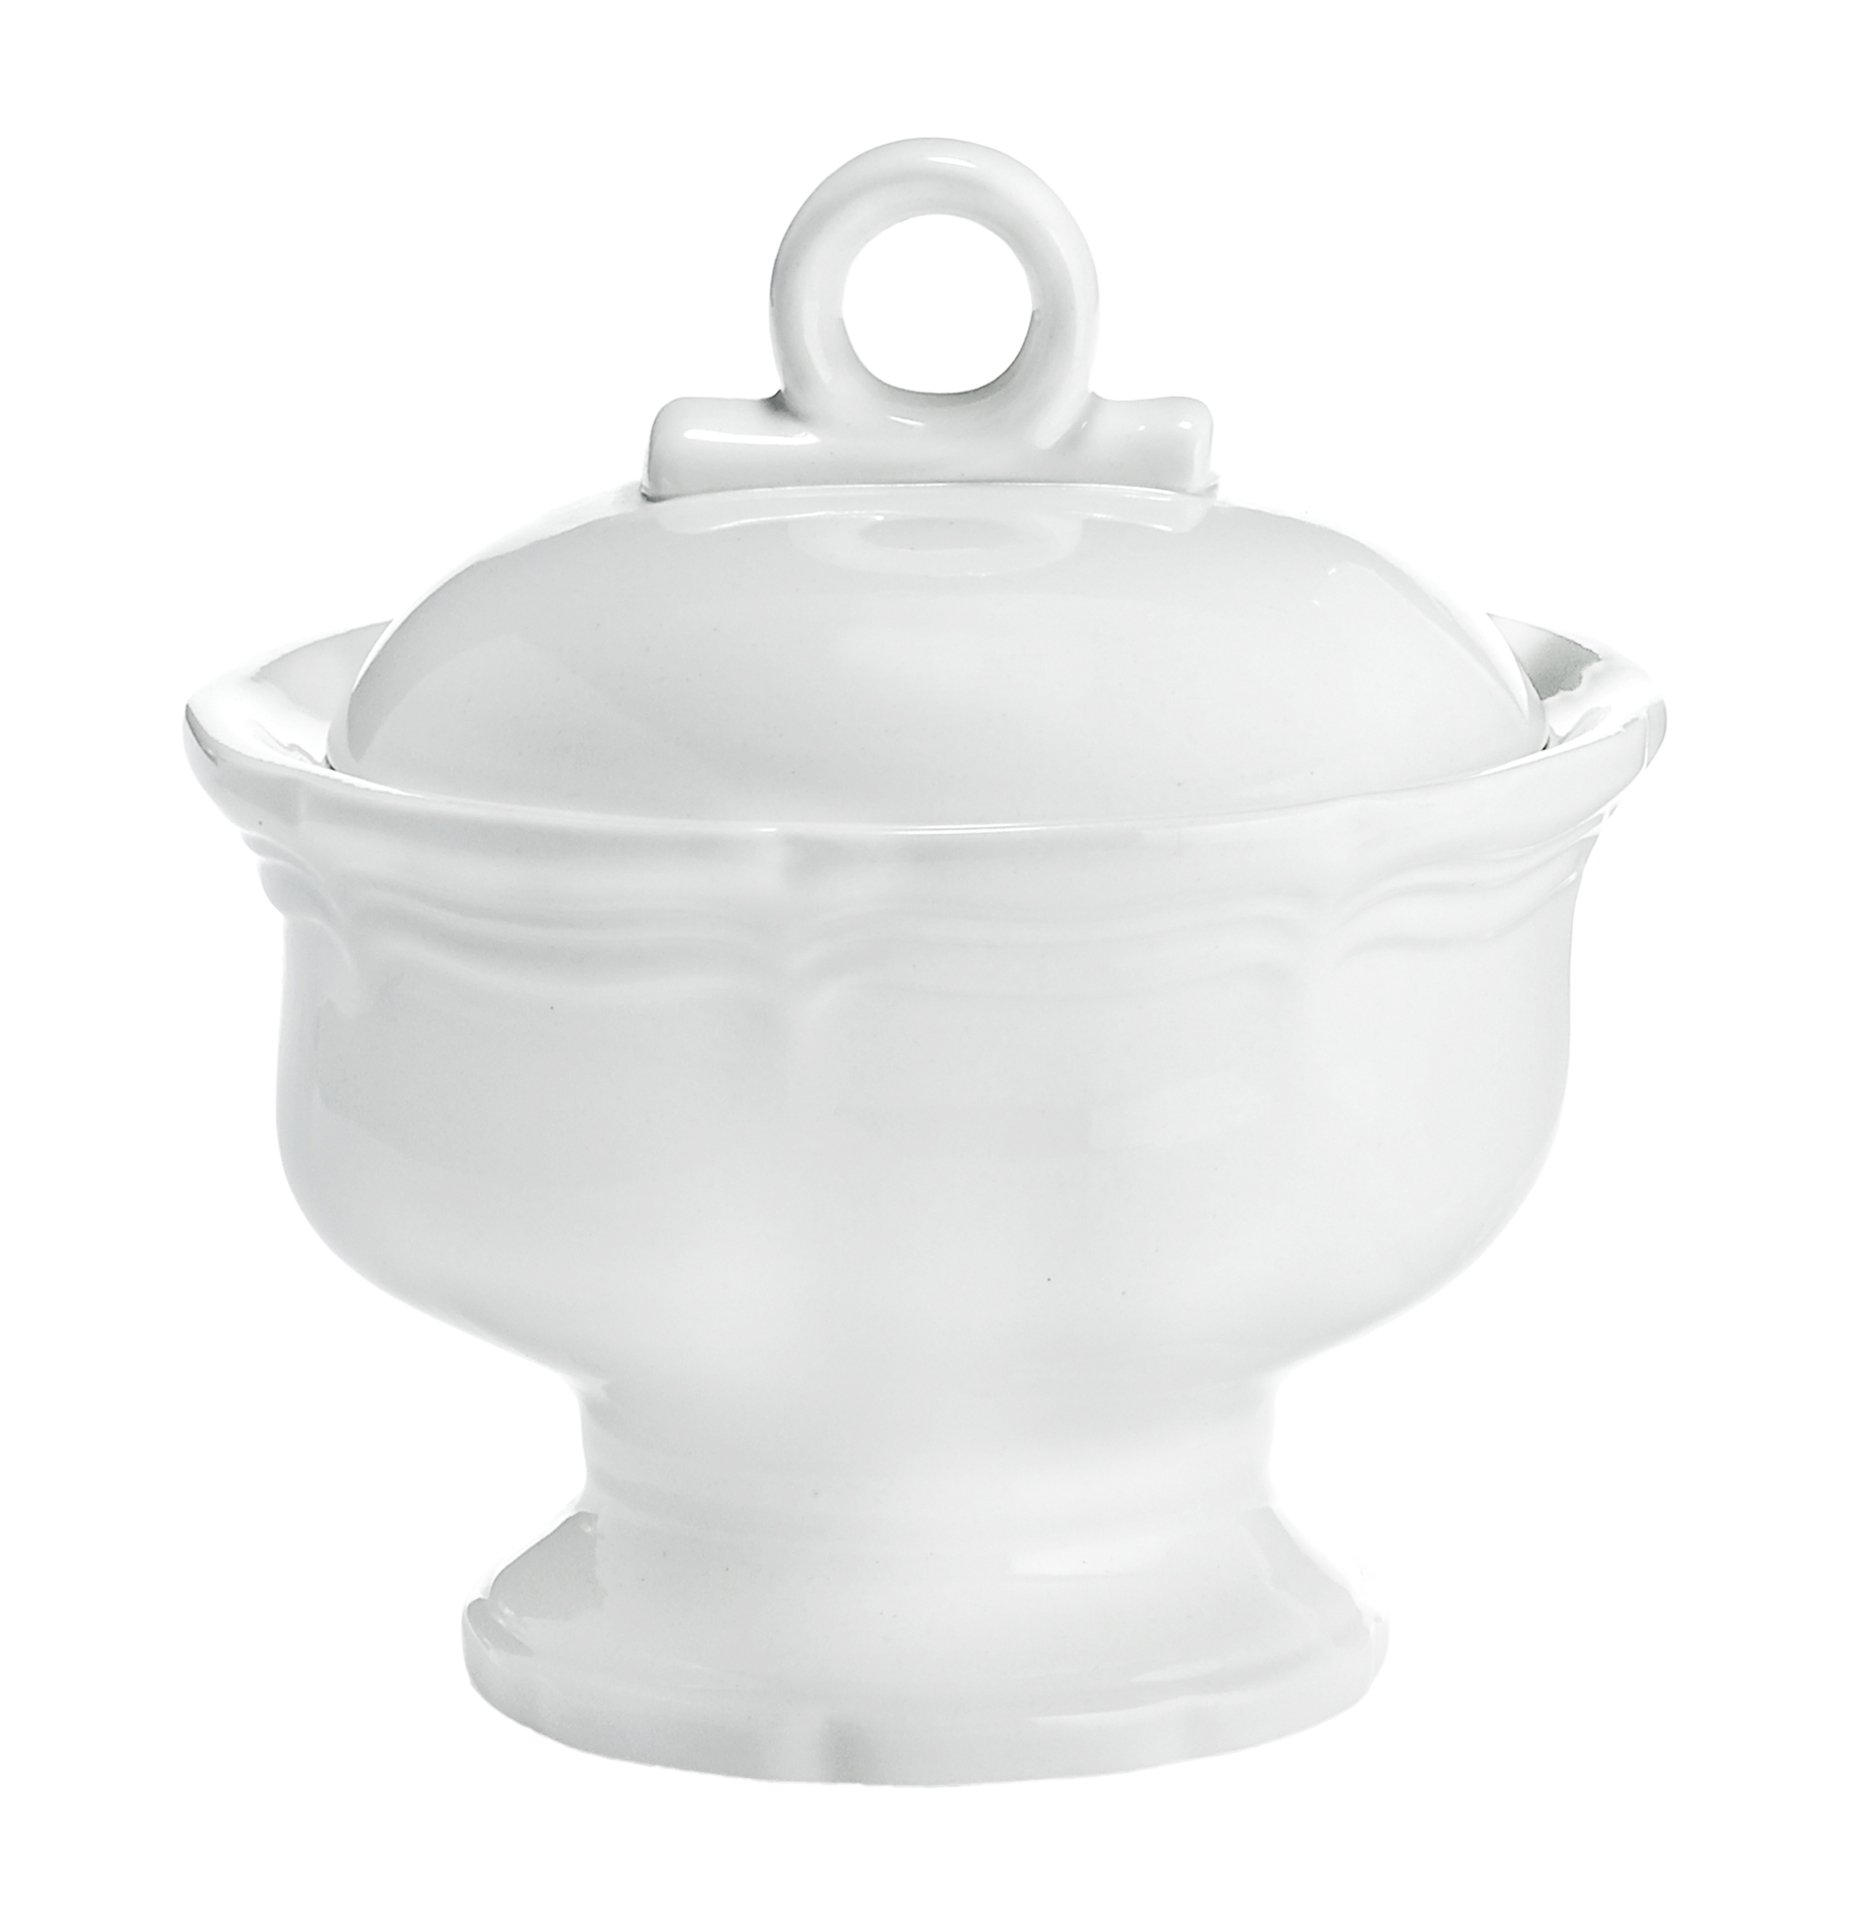 Mikasa French Countryside Covered Sugar Bowl, White